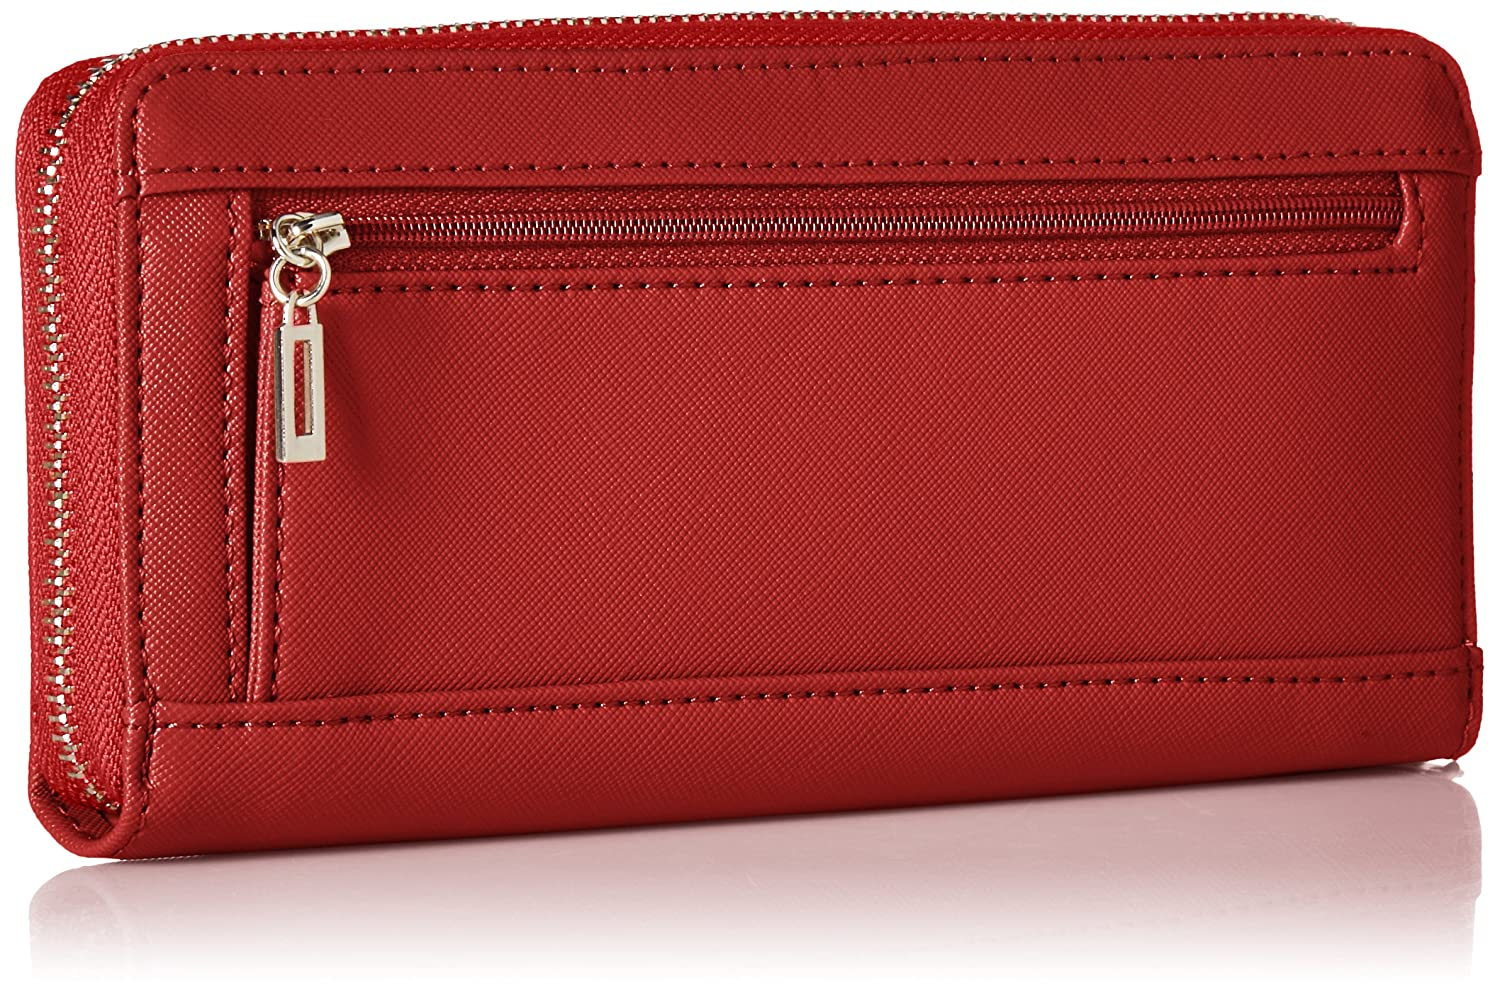 GUESS Cherie Multi Clutch Wallet  Amazon.in  Clothing   Accessories 938ab64336